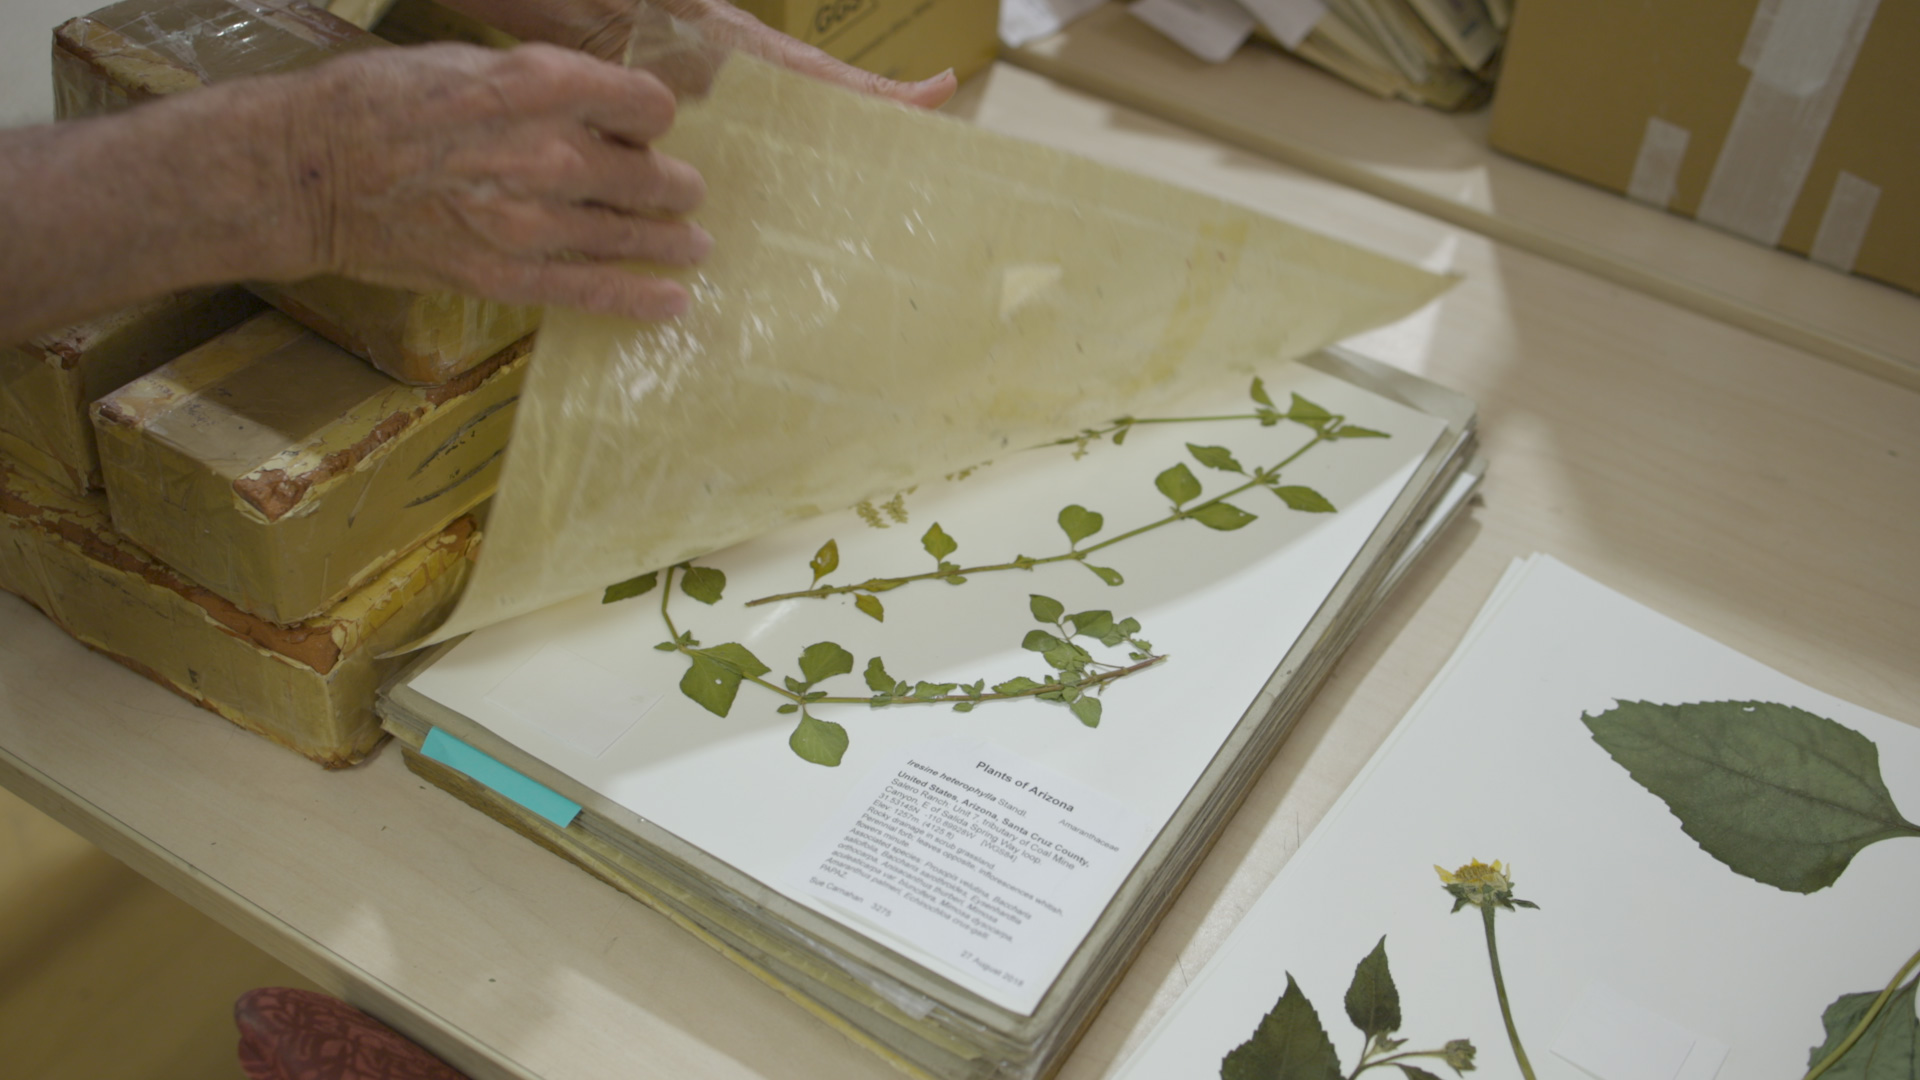 The University of Arizona Herbarium is a research collection of over 425,000 dried plant specimens, with emphasis on the plants of the Sonoran Desert region and adjacent areas